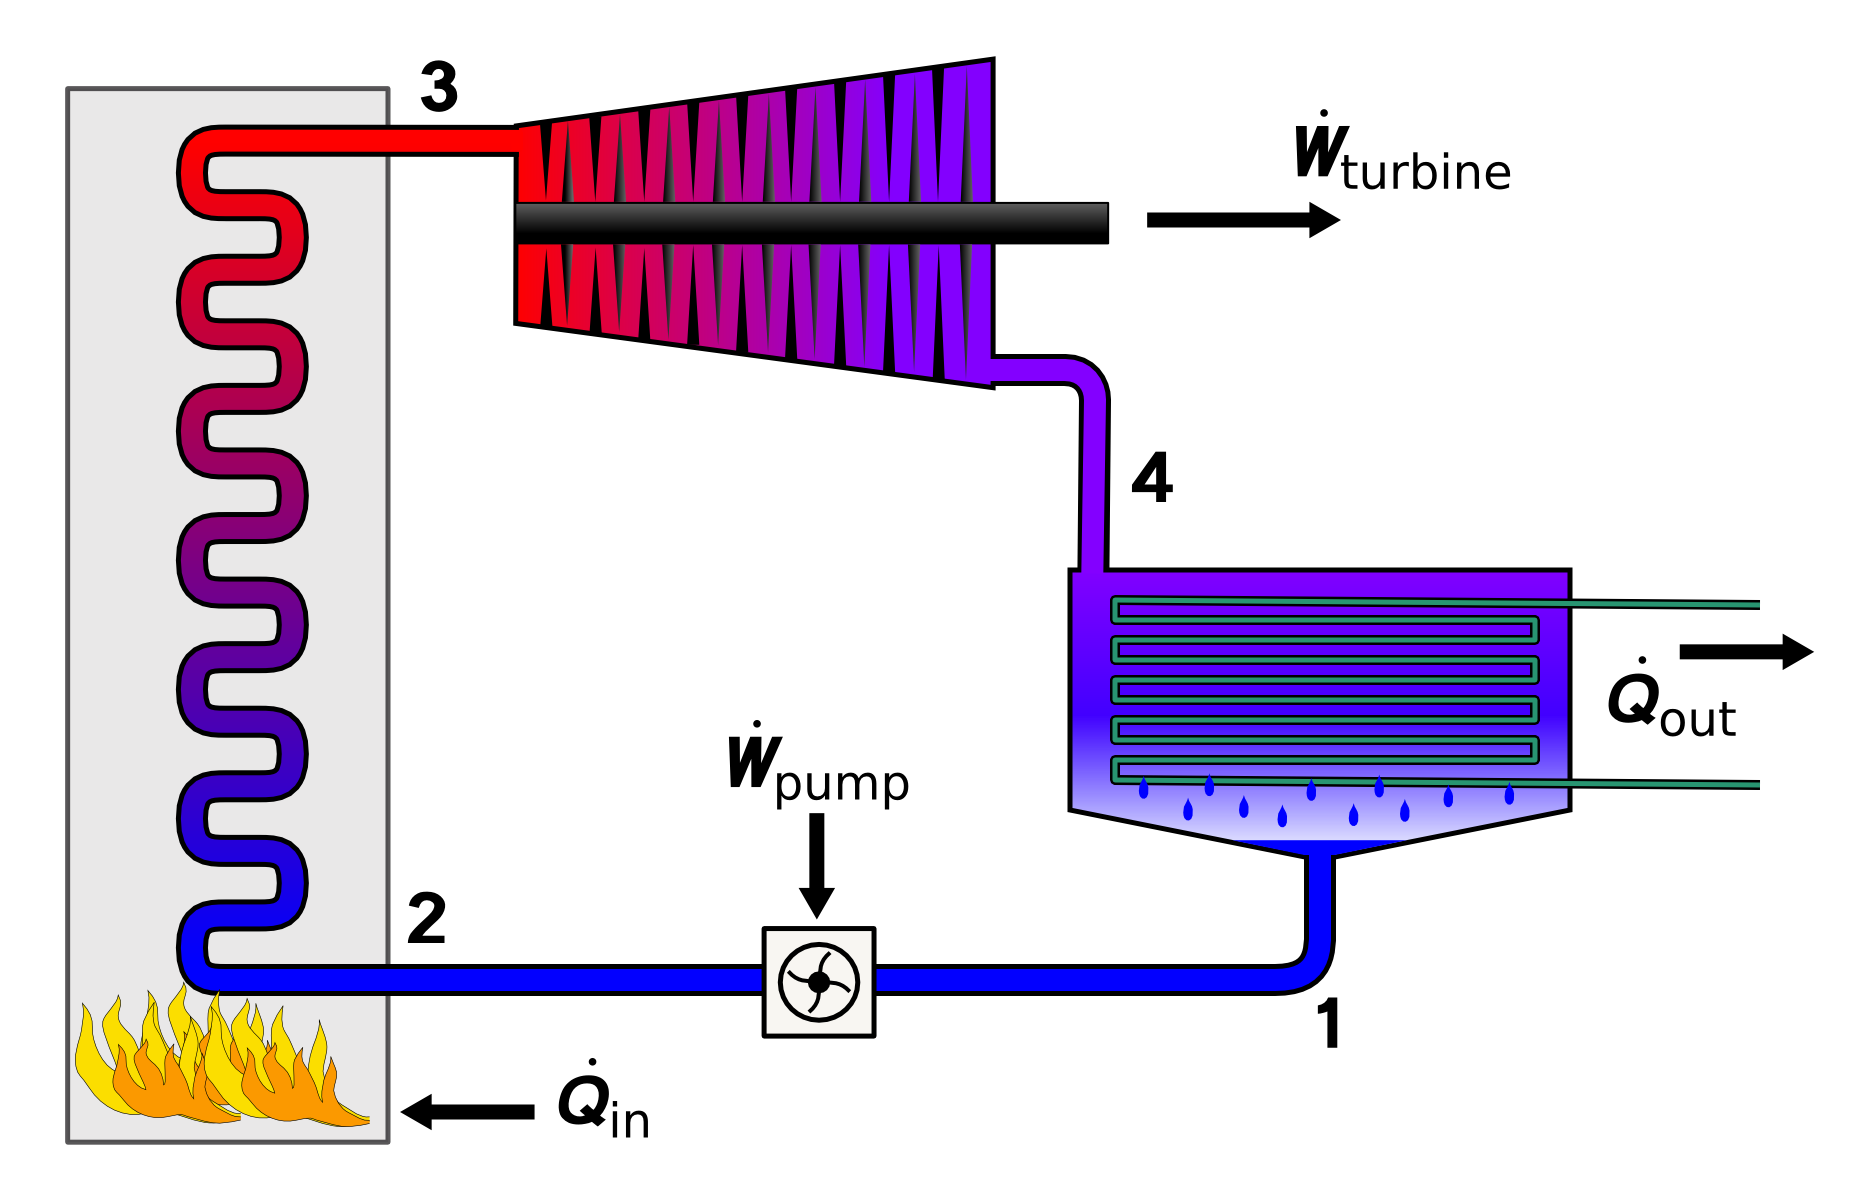 Rankine cycle - Wikipedia